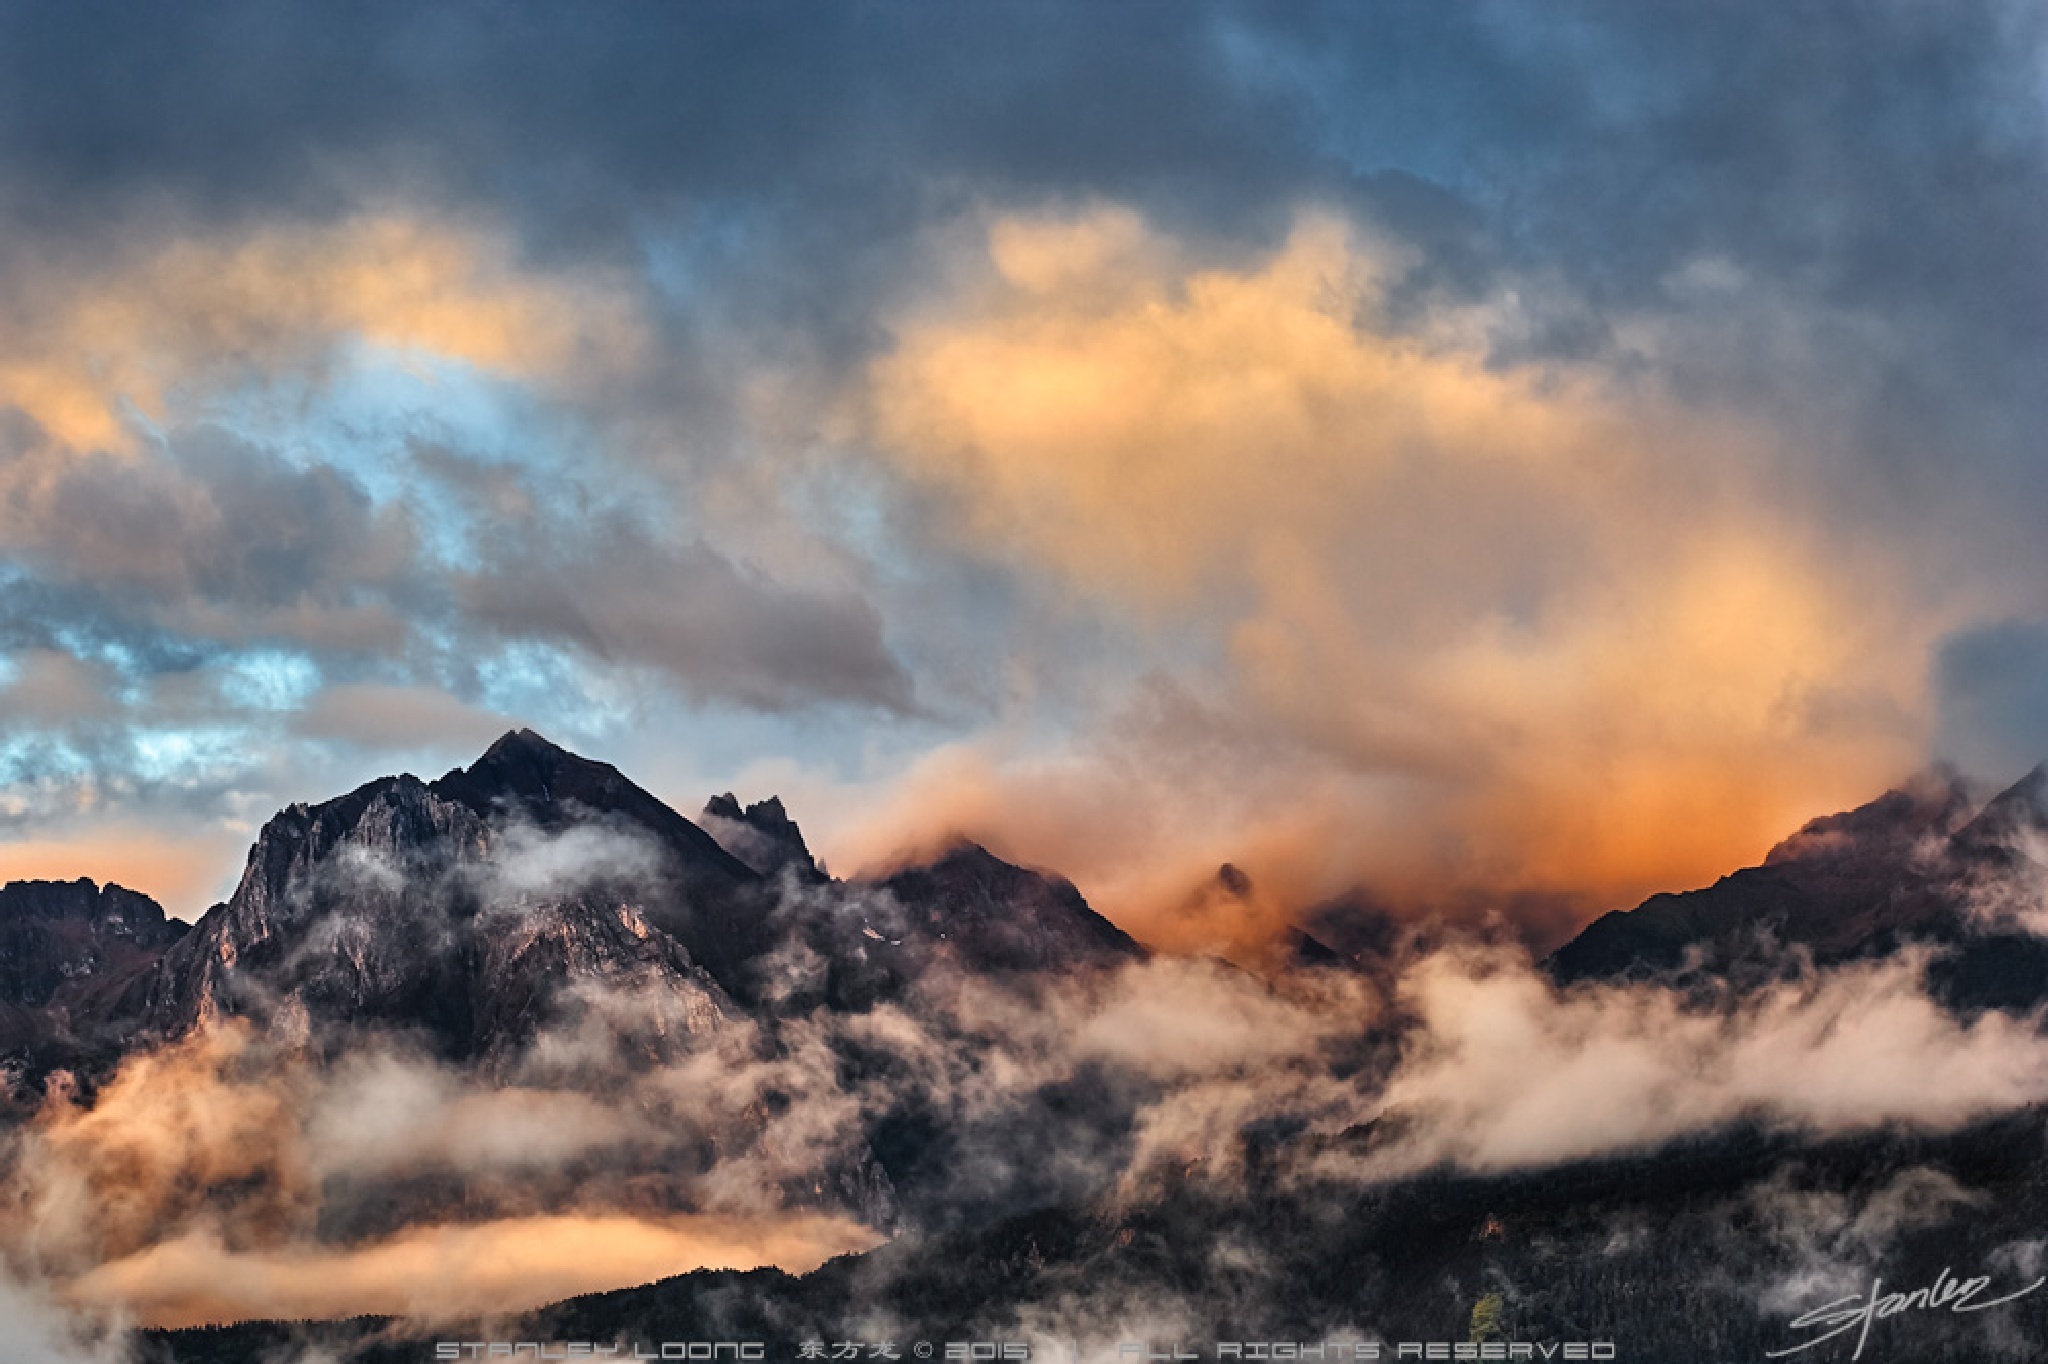 Mountains' Glow by Stanley Loong